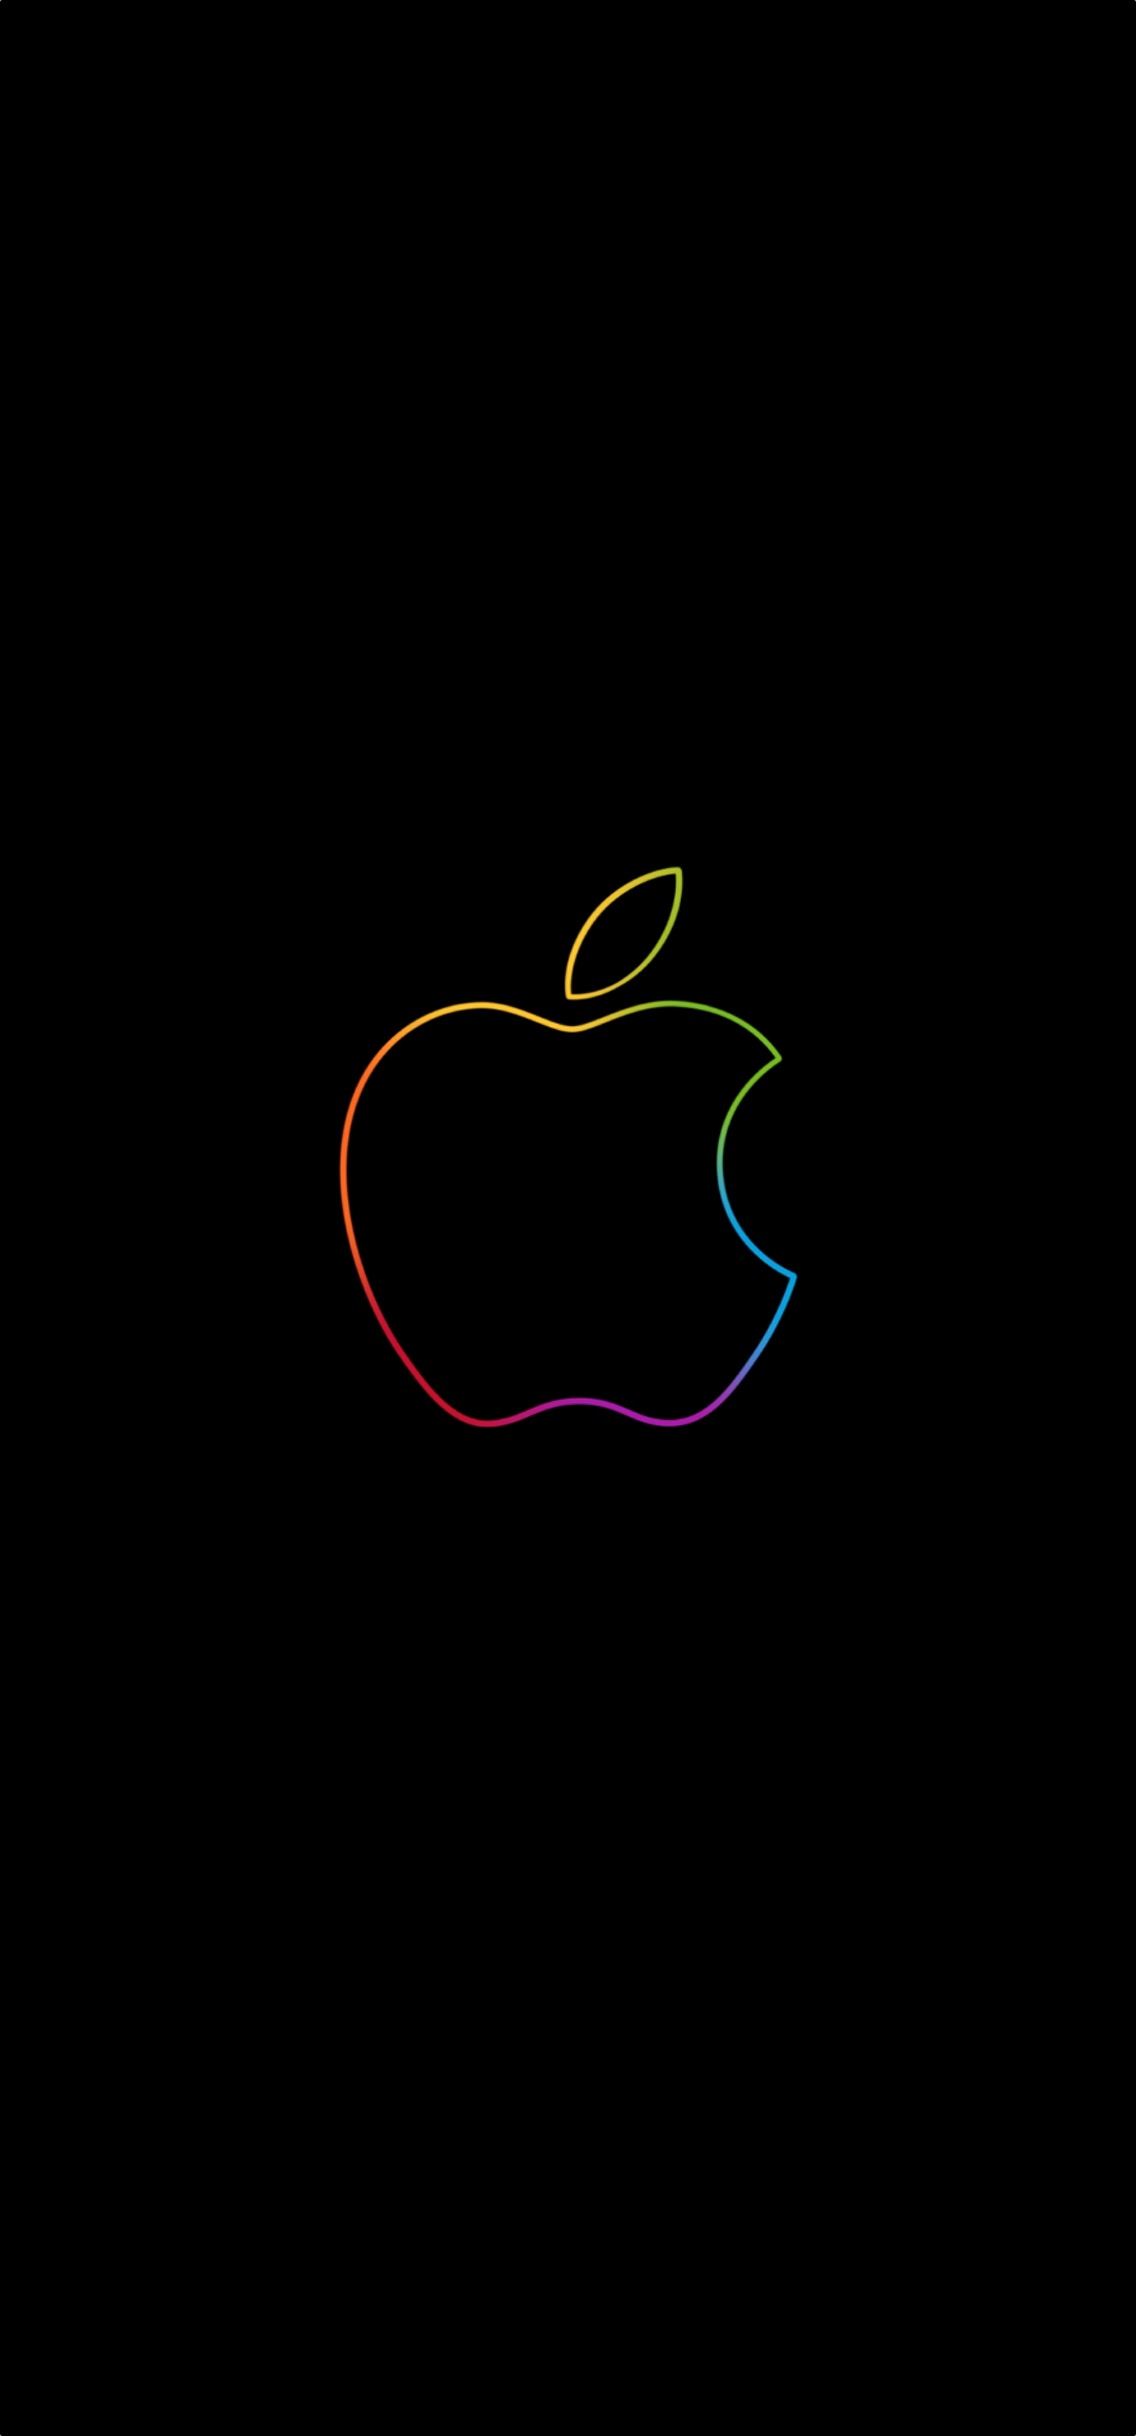 Download Apple Store Wallpapers Featuring The Colorful Apple Logo